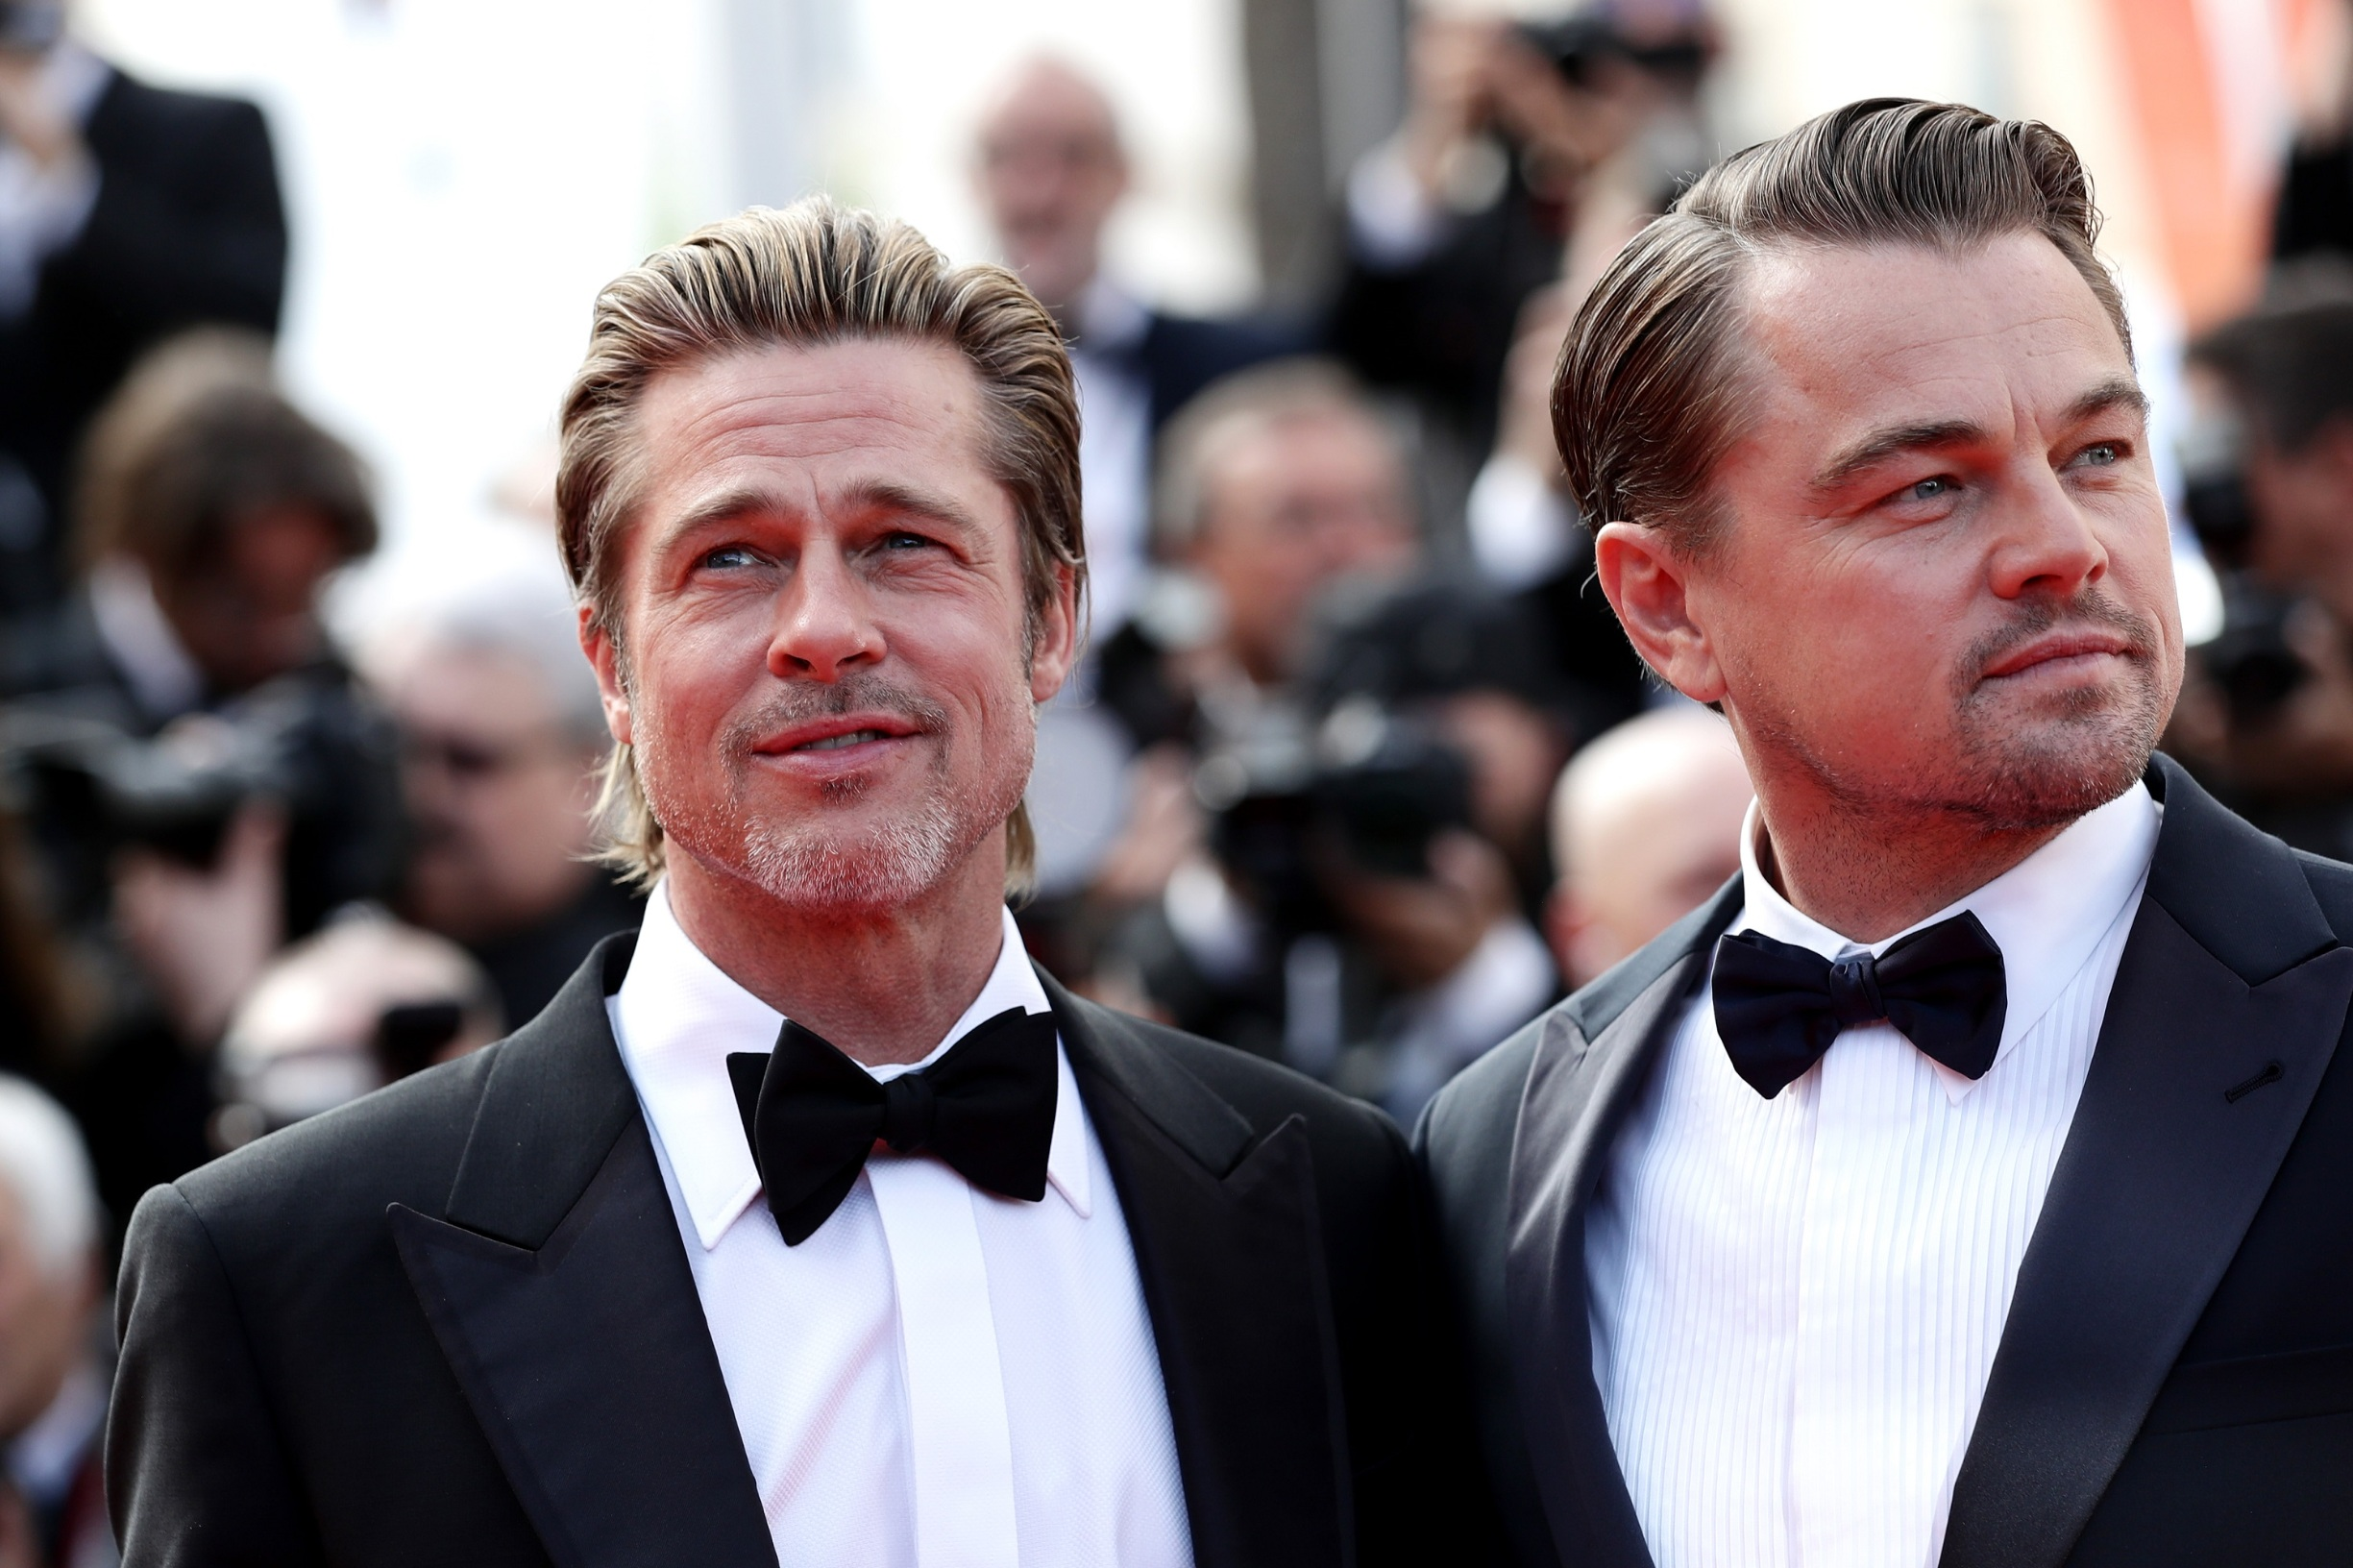 CANNES, FRANCE - MAY 21: Brad Pitt and Leonardo DiCaprio attends the screening of